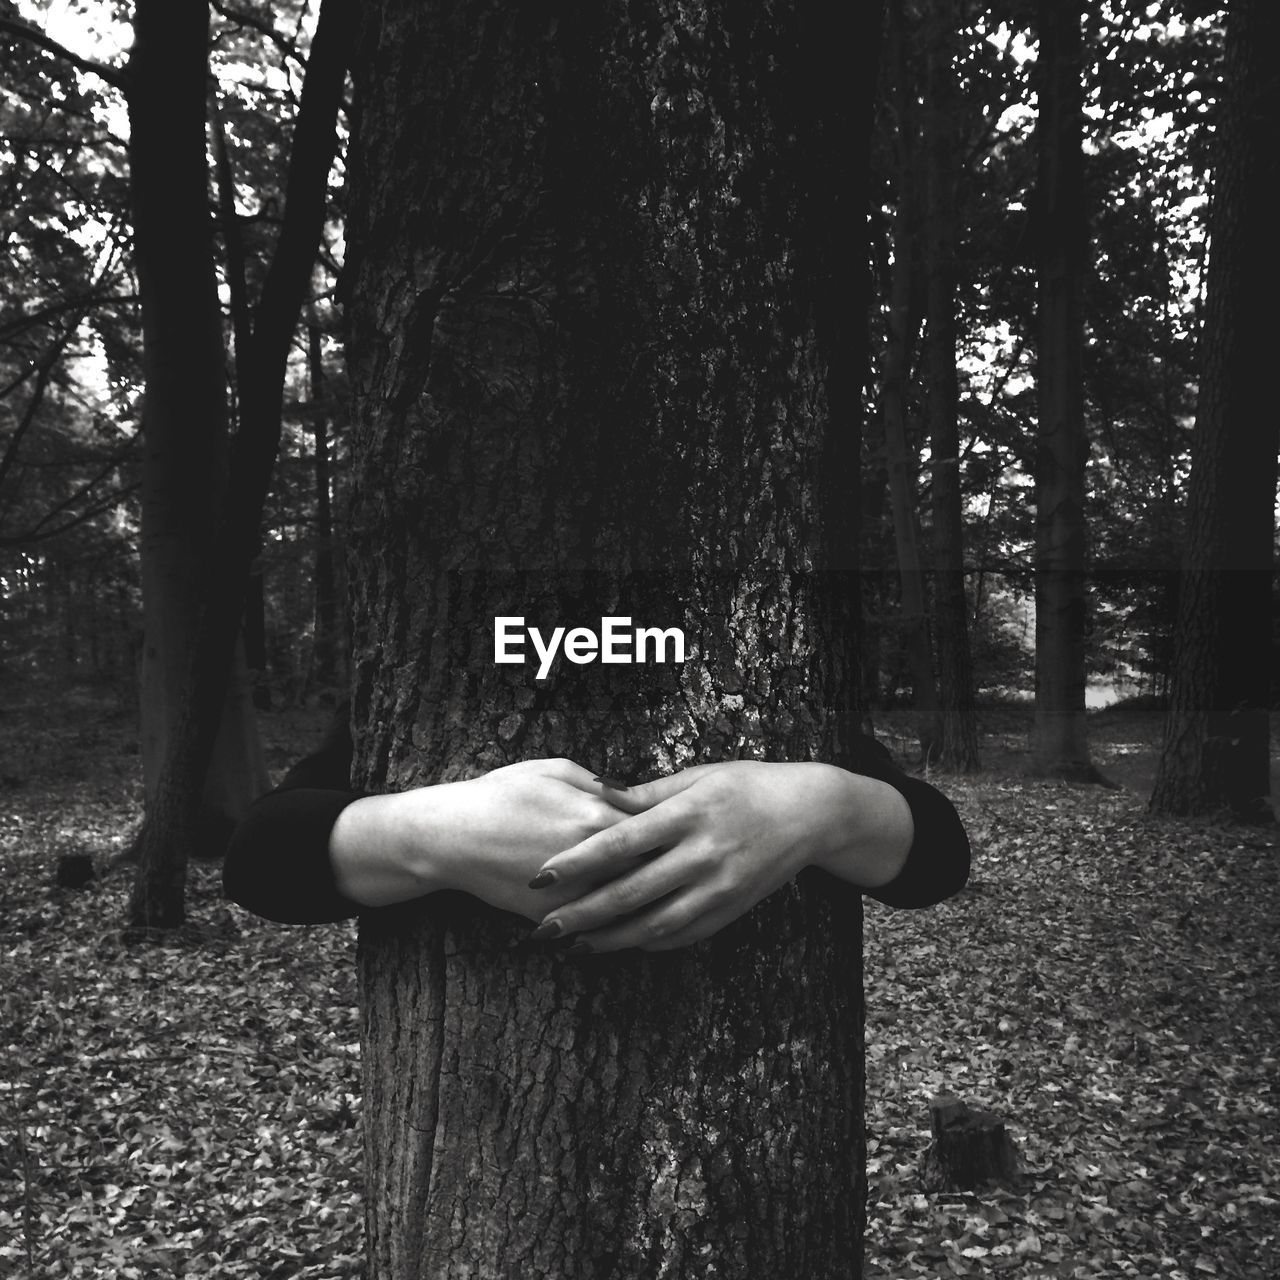 View of hands hugging tree in forest